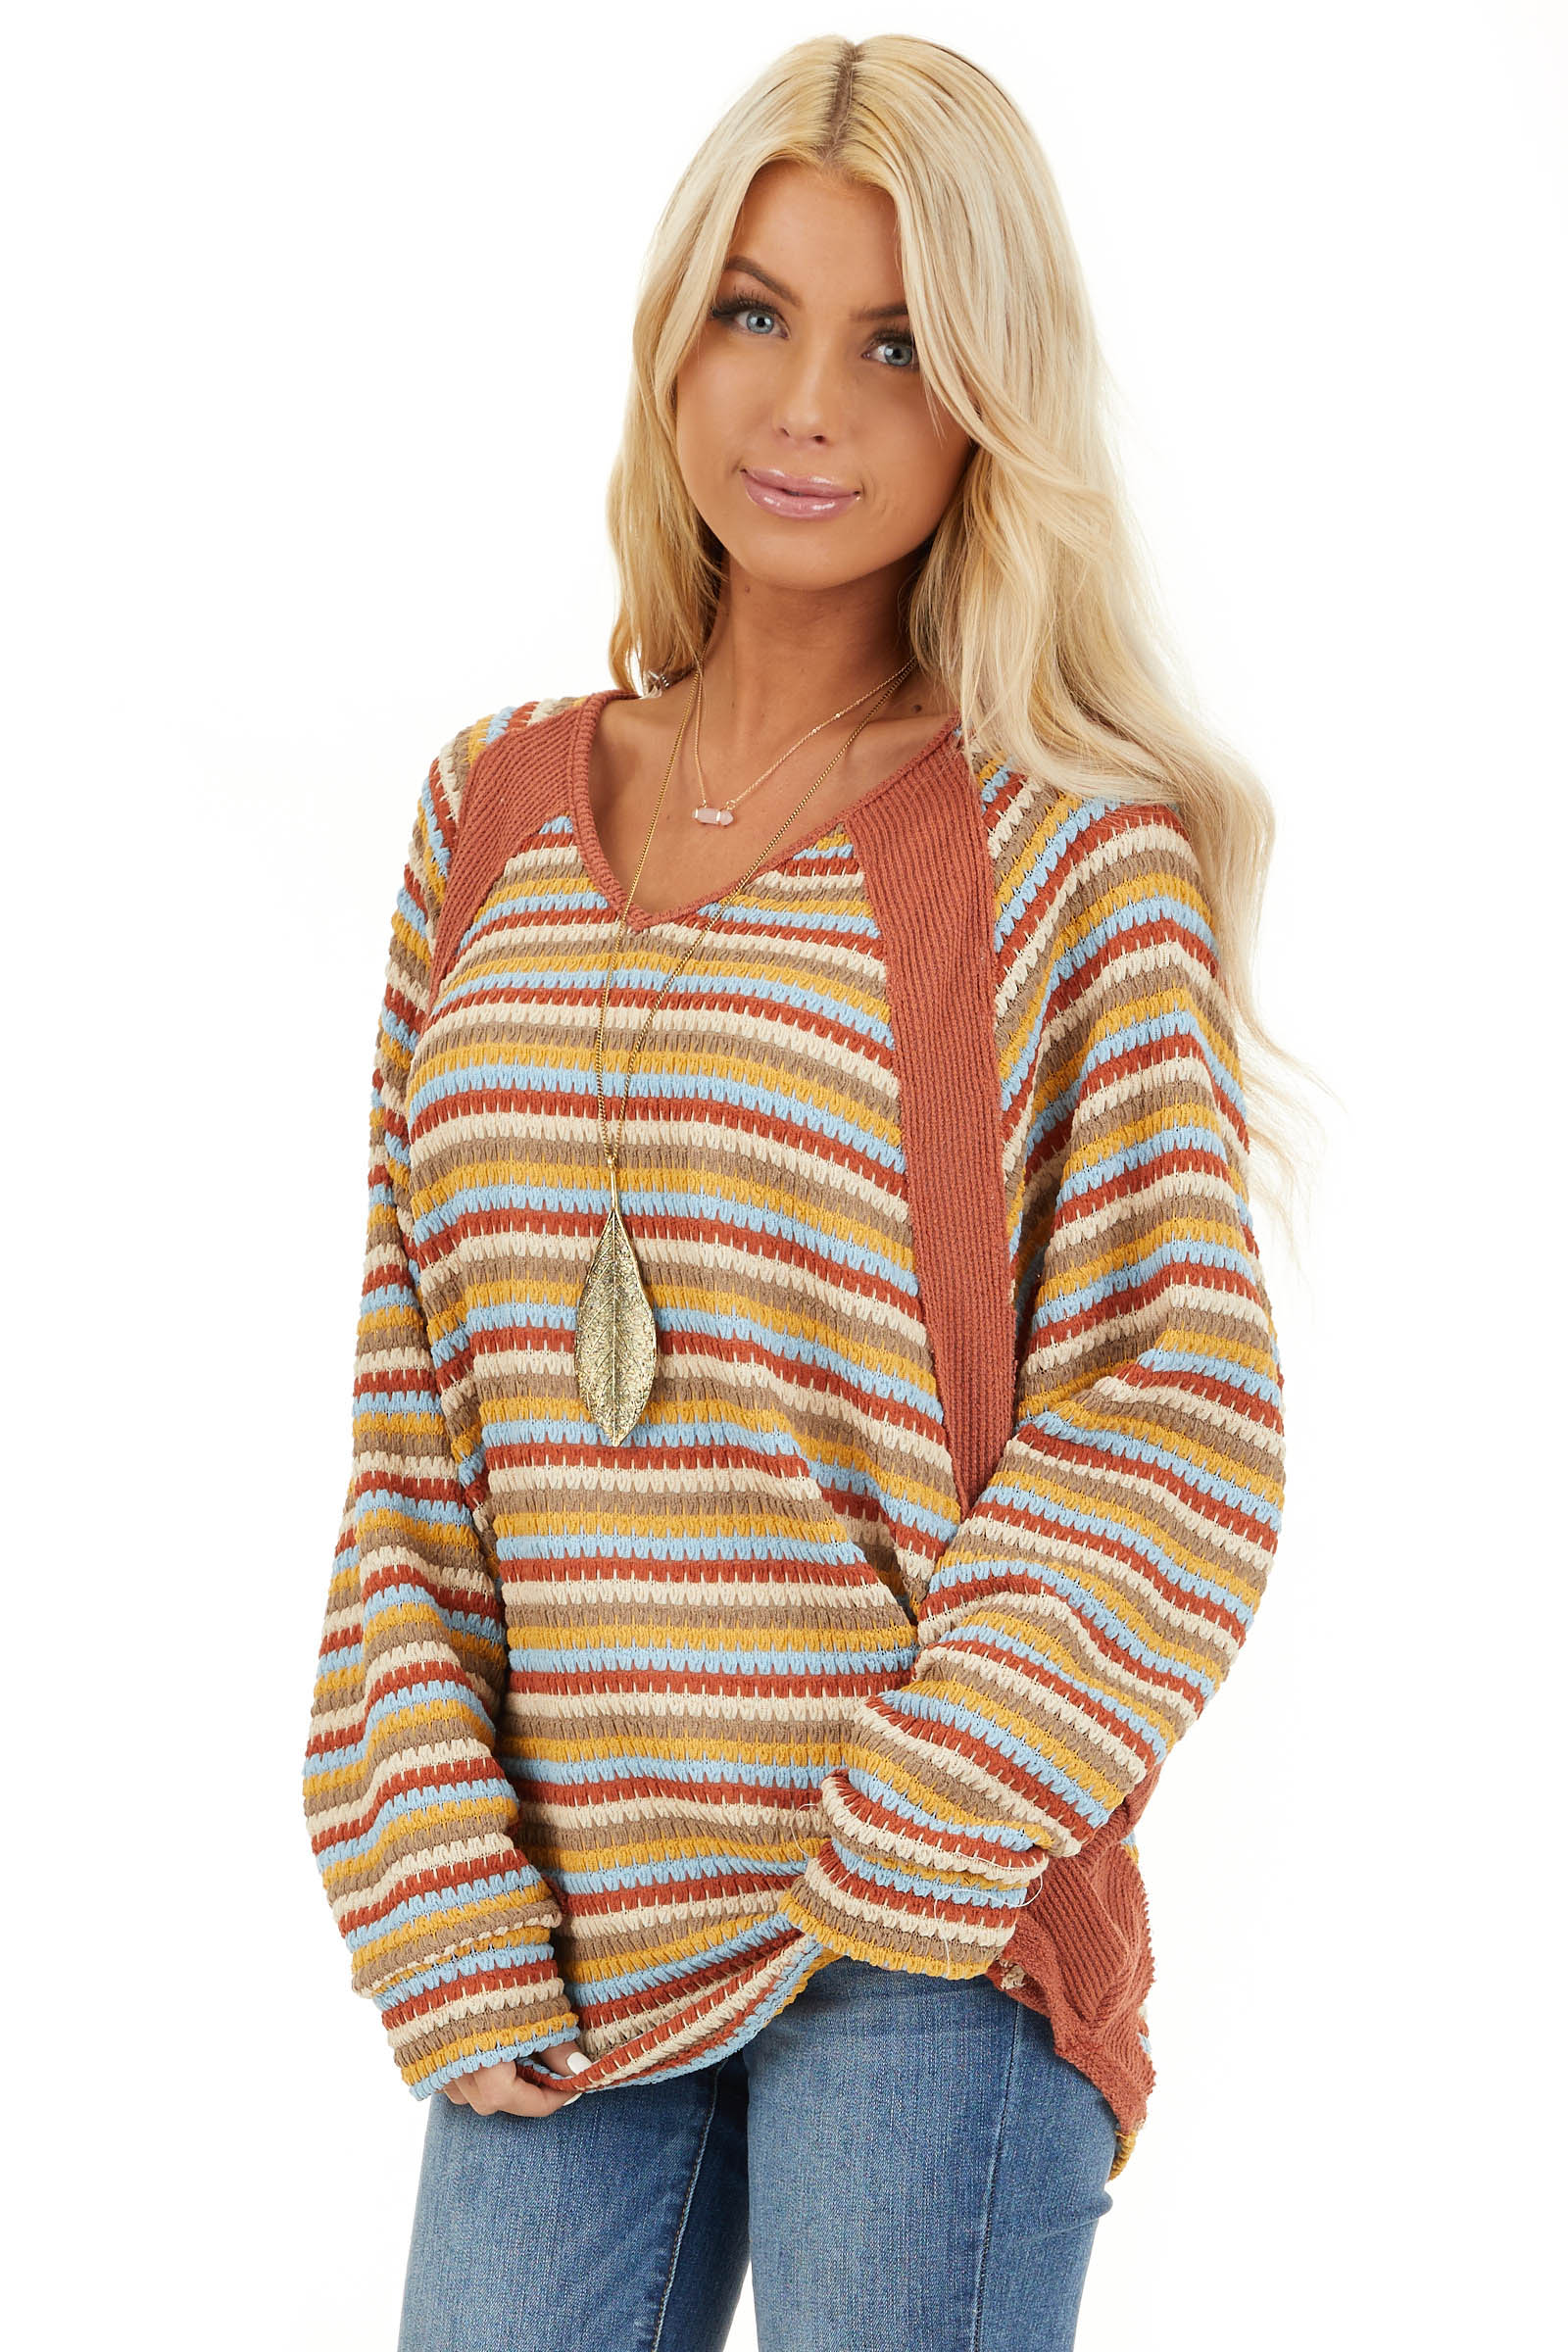 Burnt Orange Multicolor Striped Knit Top with Long Sleeves front close up